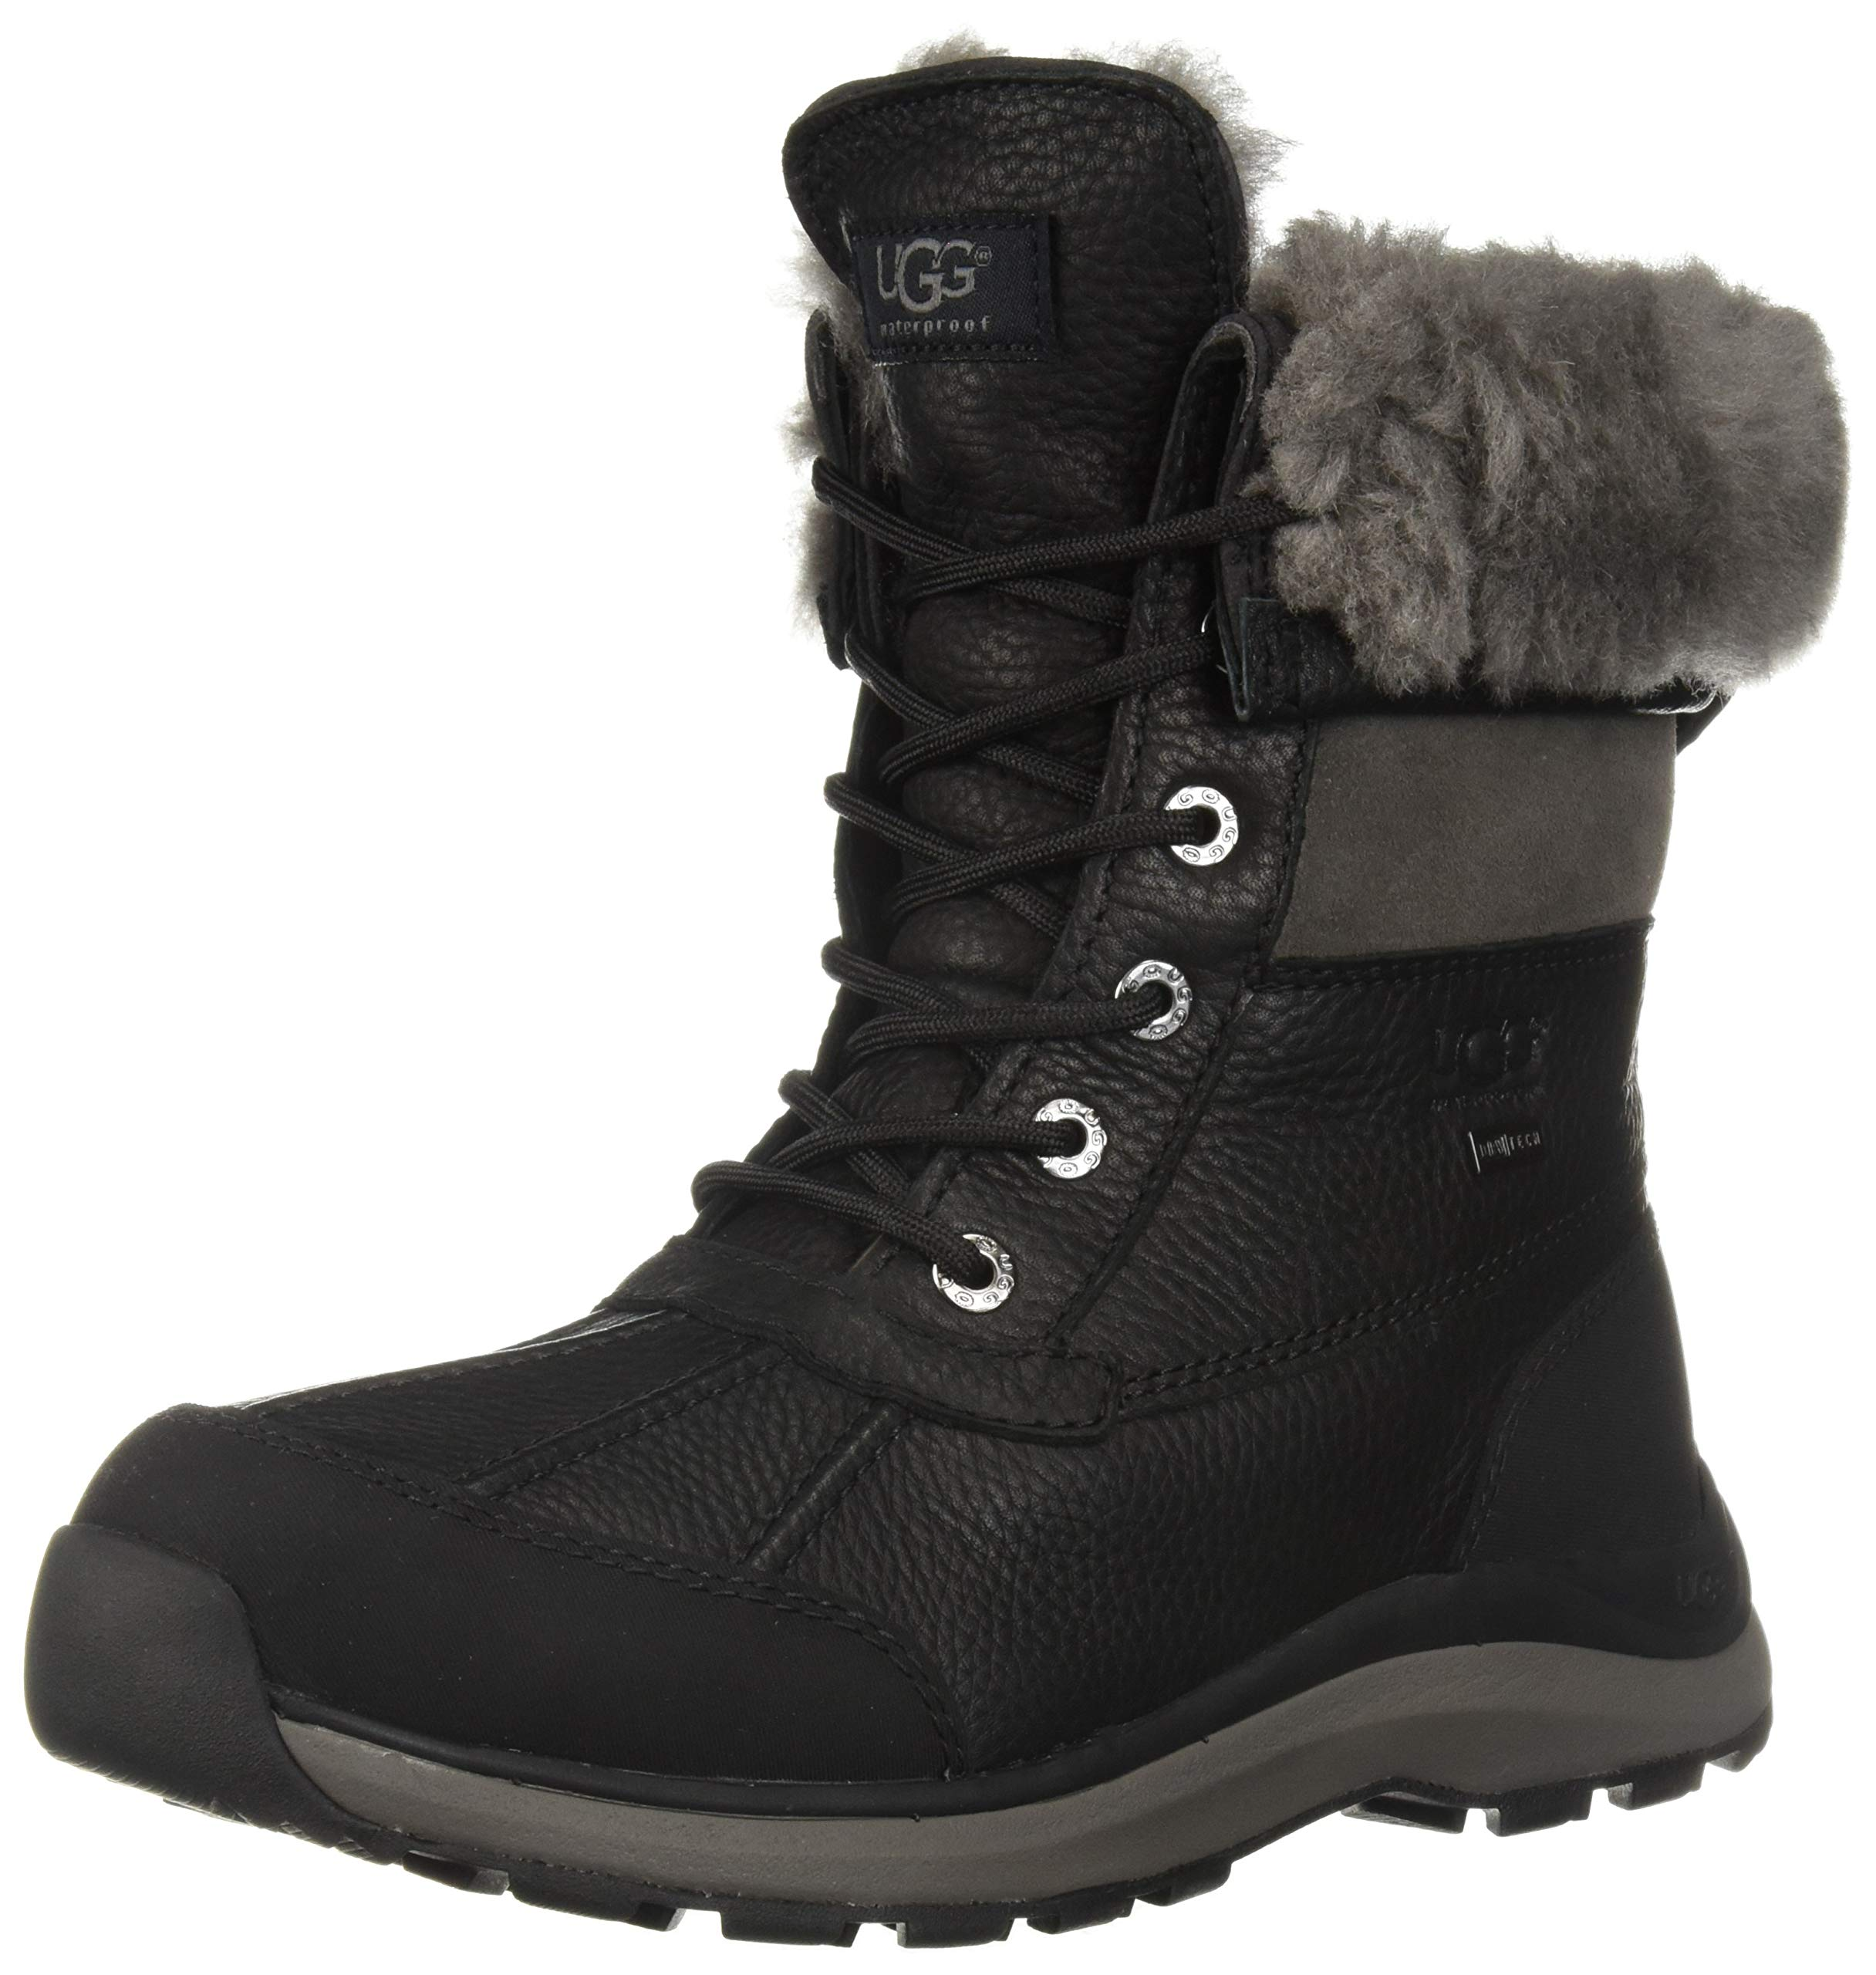 UGG Women's W ADIRONDACK BOOT III Snow, black, 9 M US by UGG